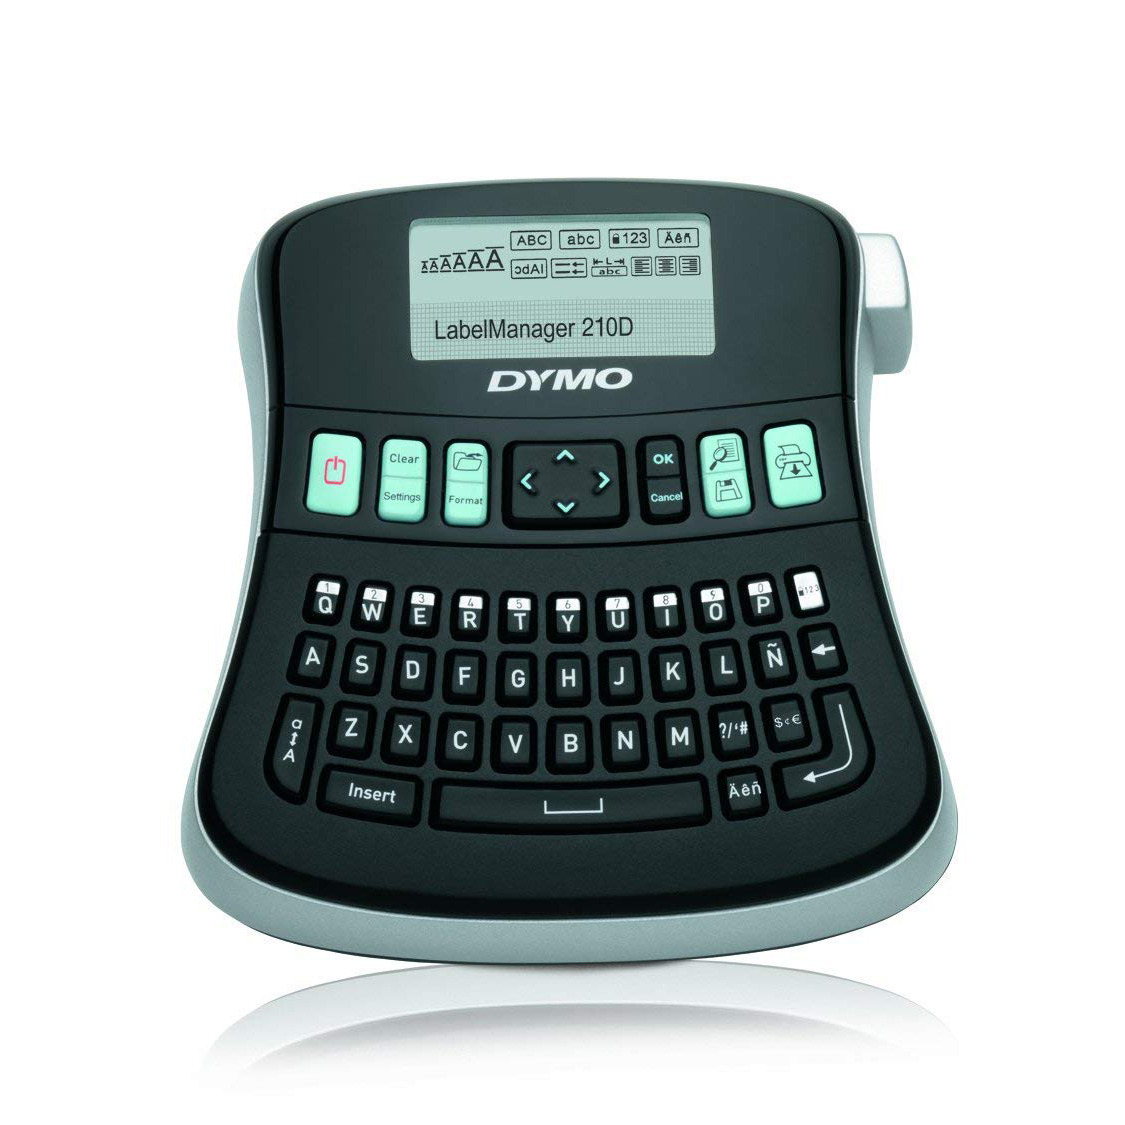 Dymo S0784440 Label Manager 210D Label Maker with Qwerty Keyboard